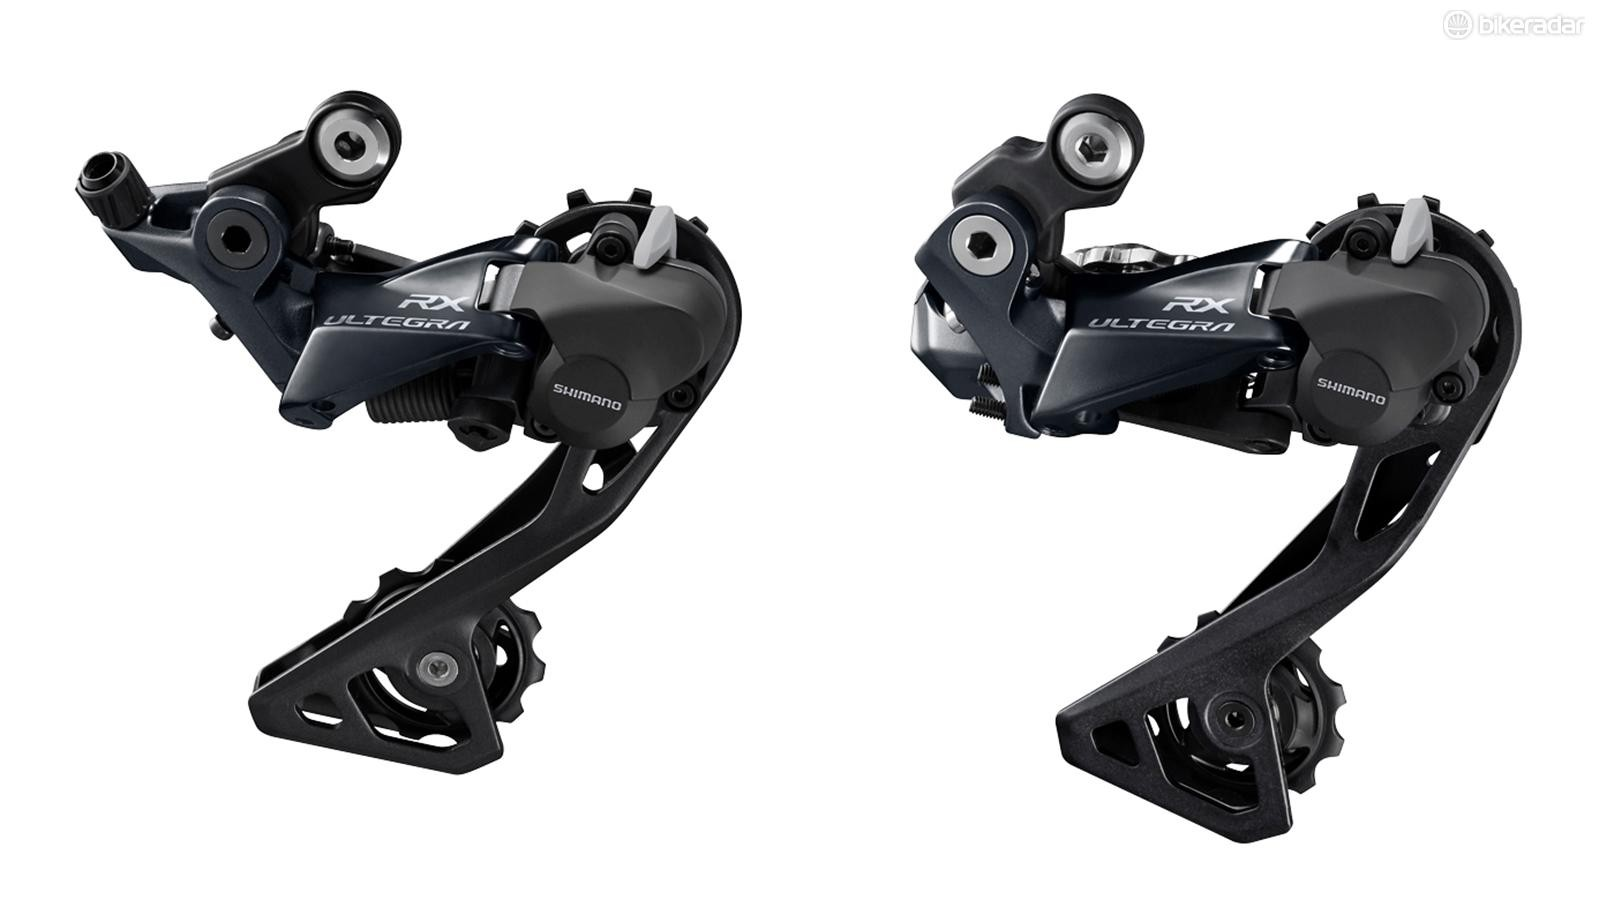 Shimano has officially launched the clutch-equipped Ultegra RX rear derailleurs for mechanical and Di2 drivetrains